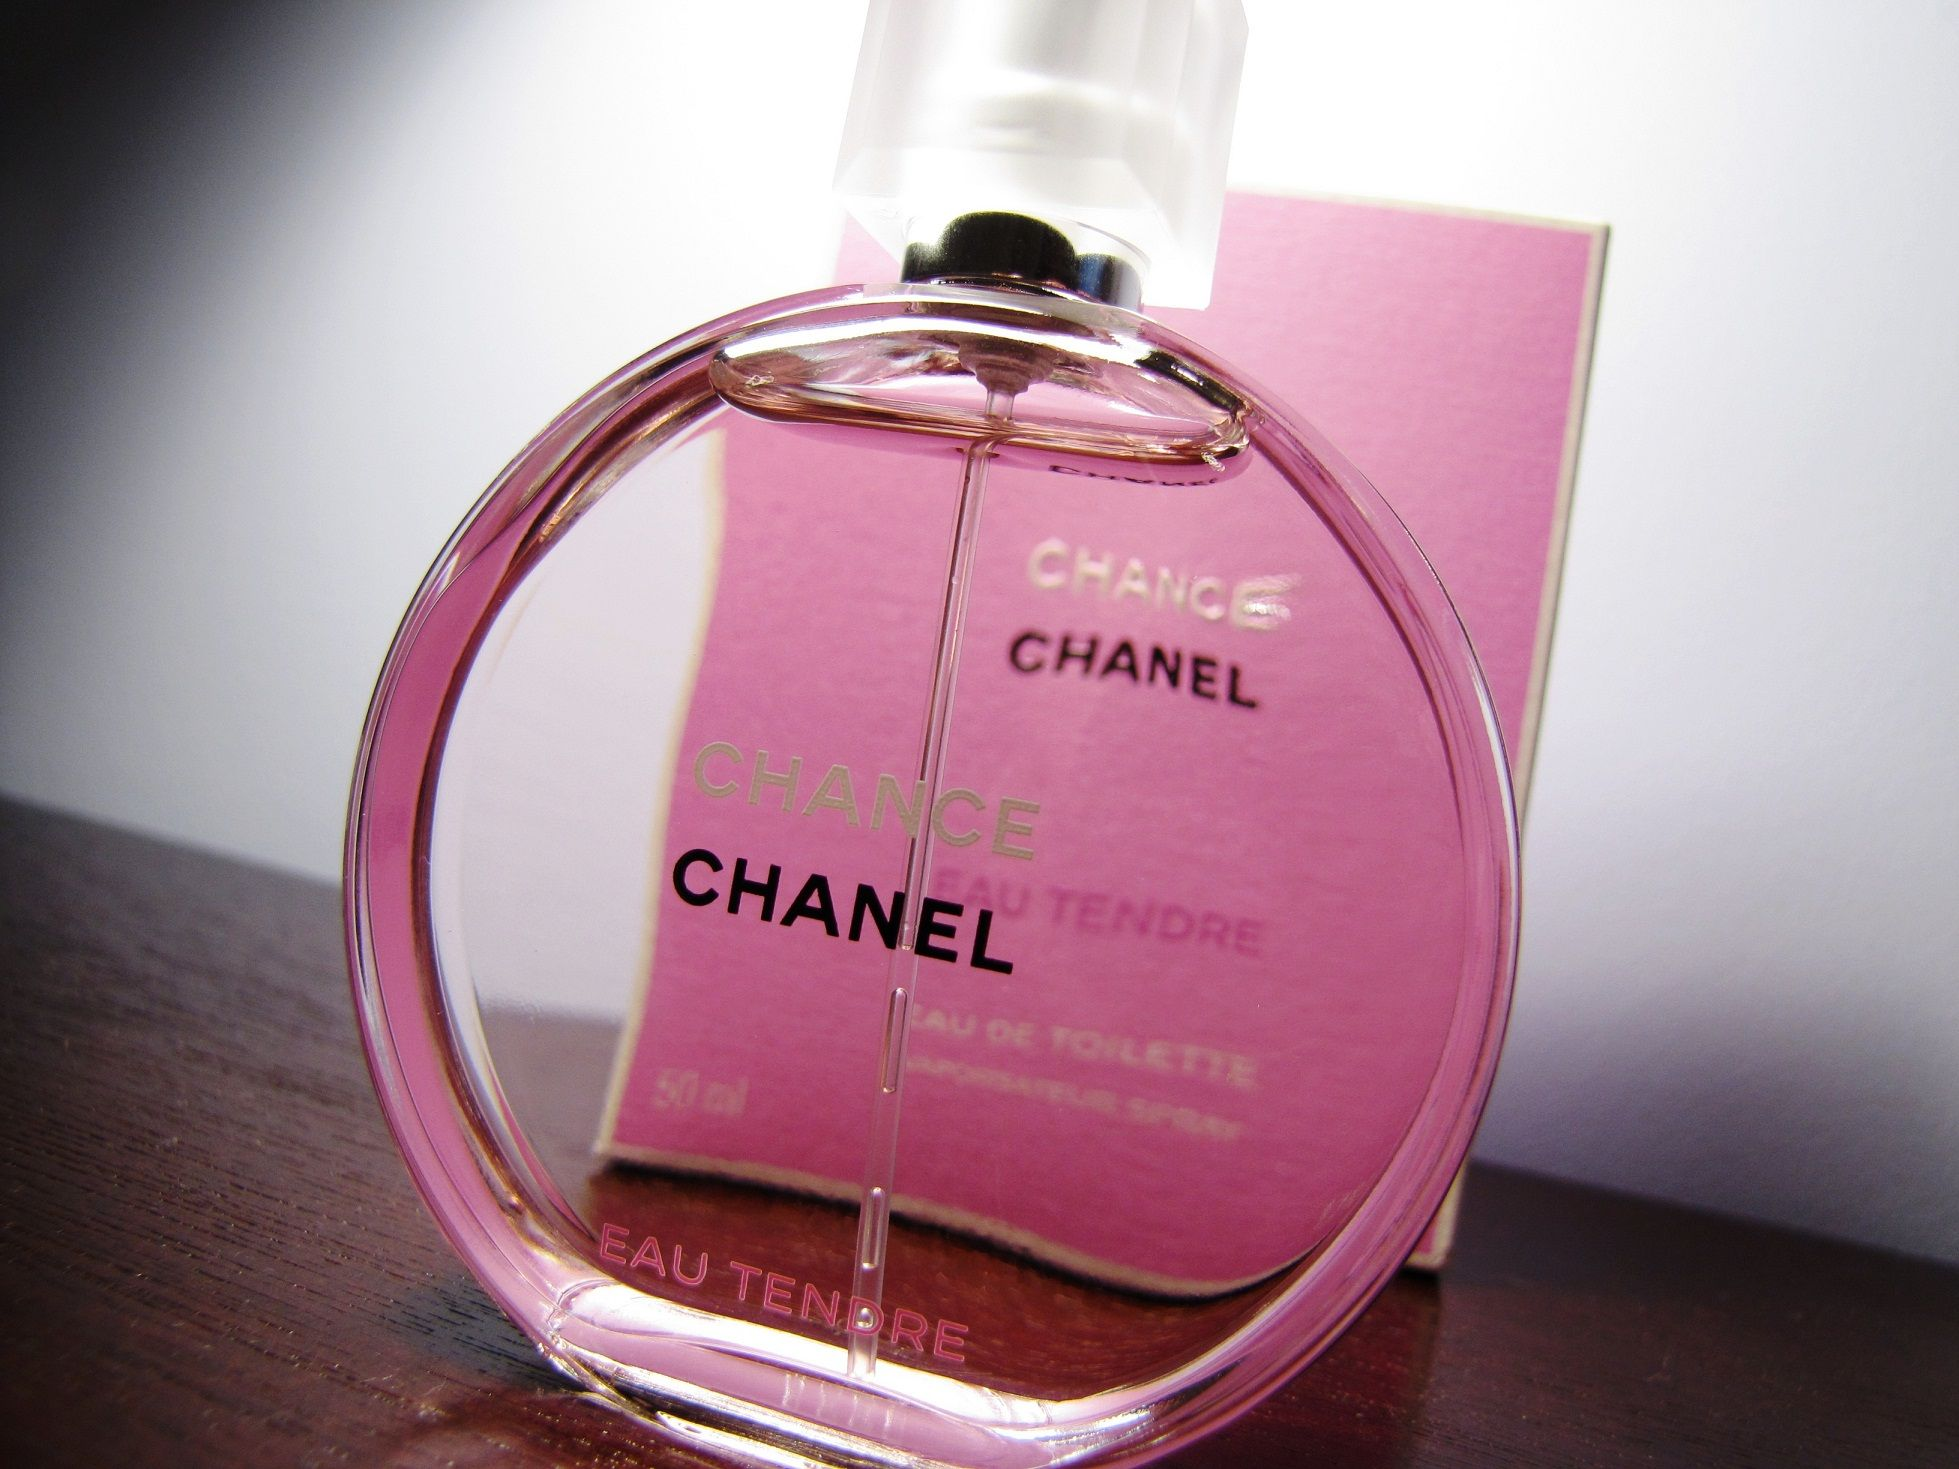 Chanel Chance pink bottle! At macy's